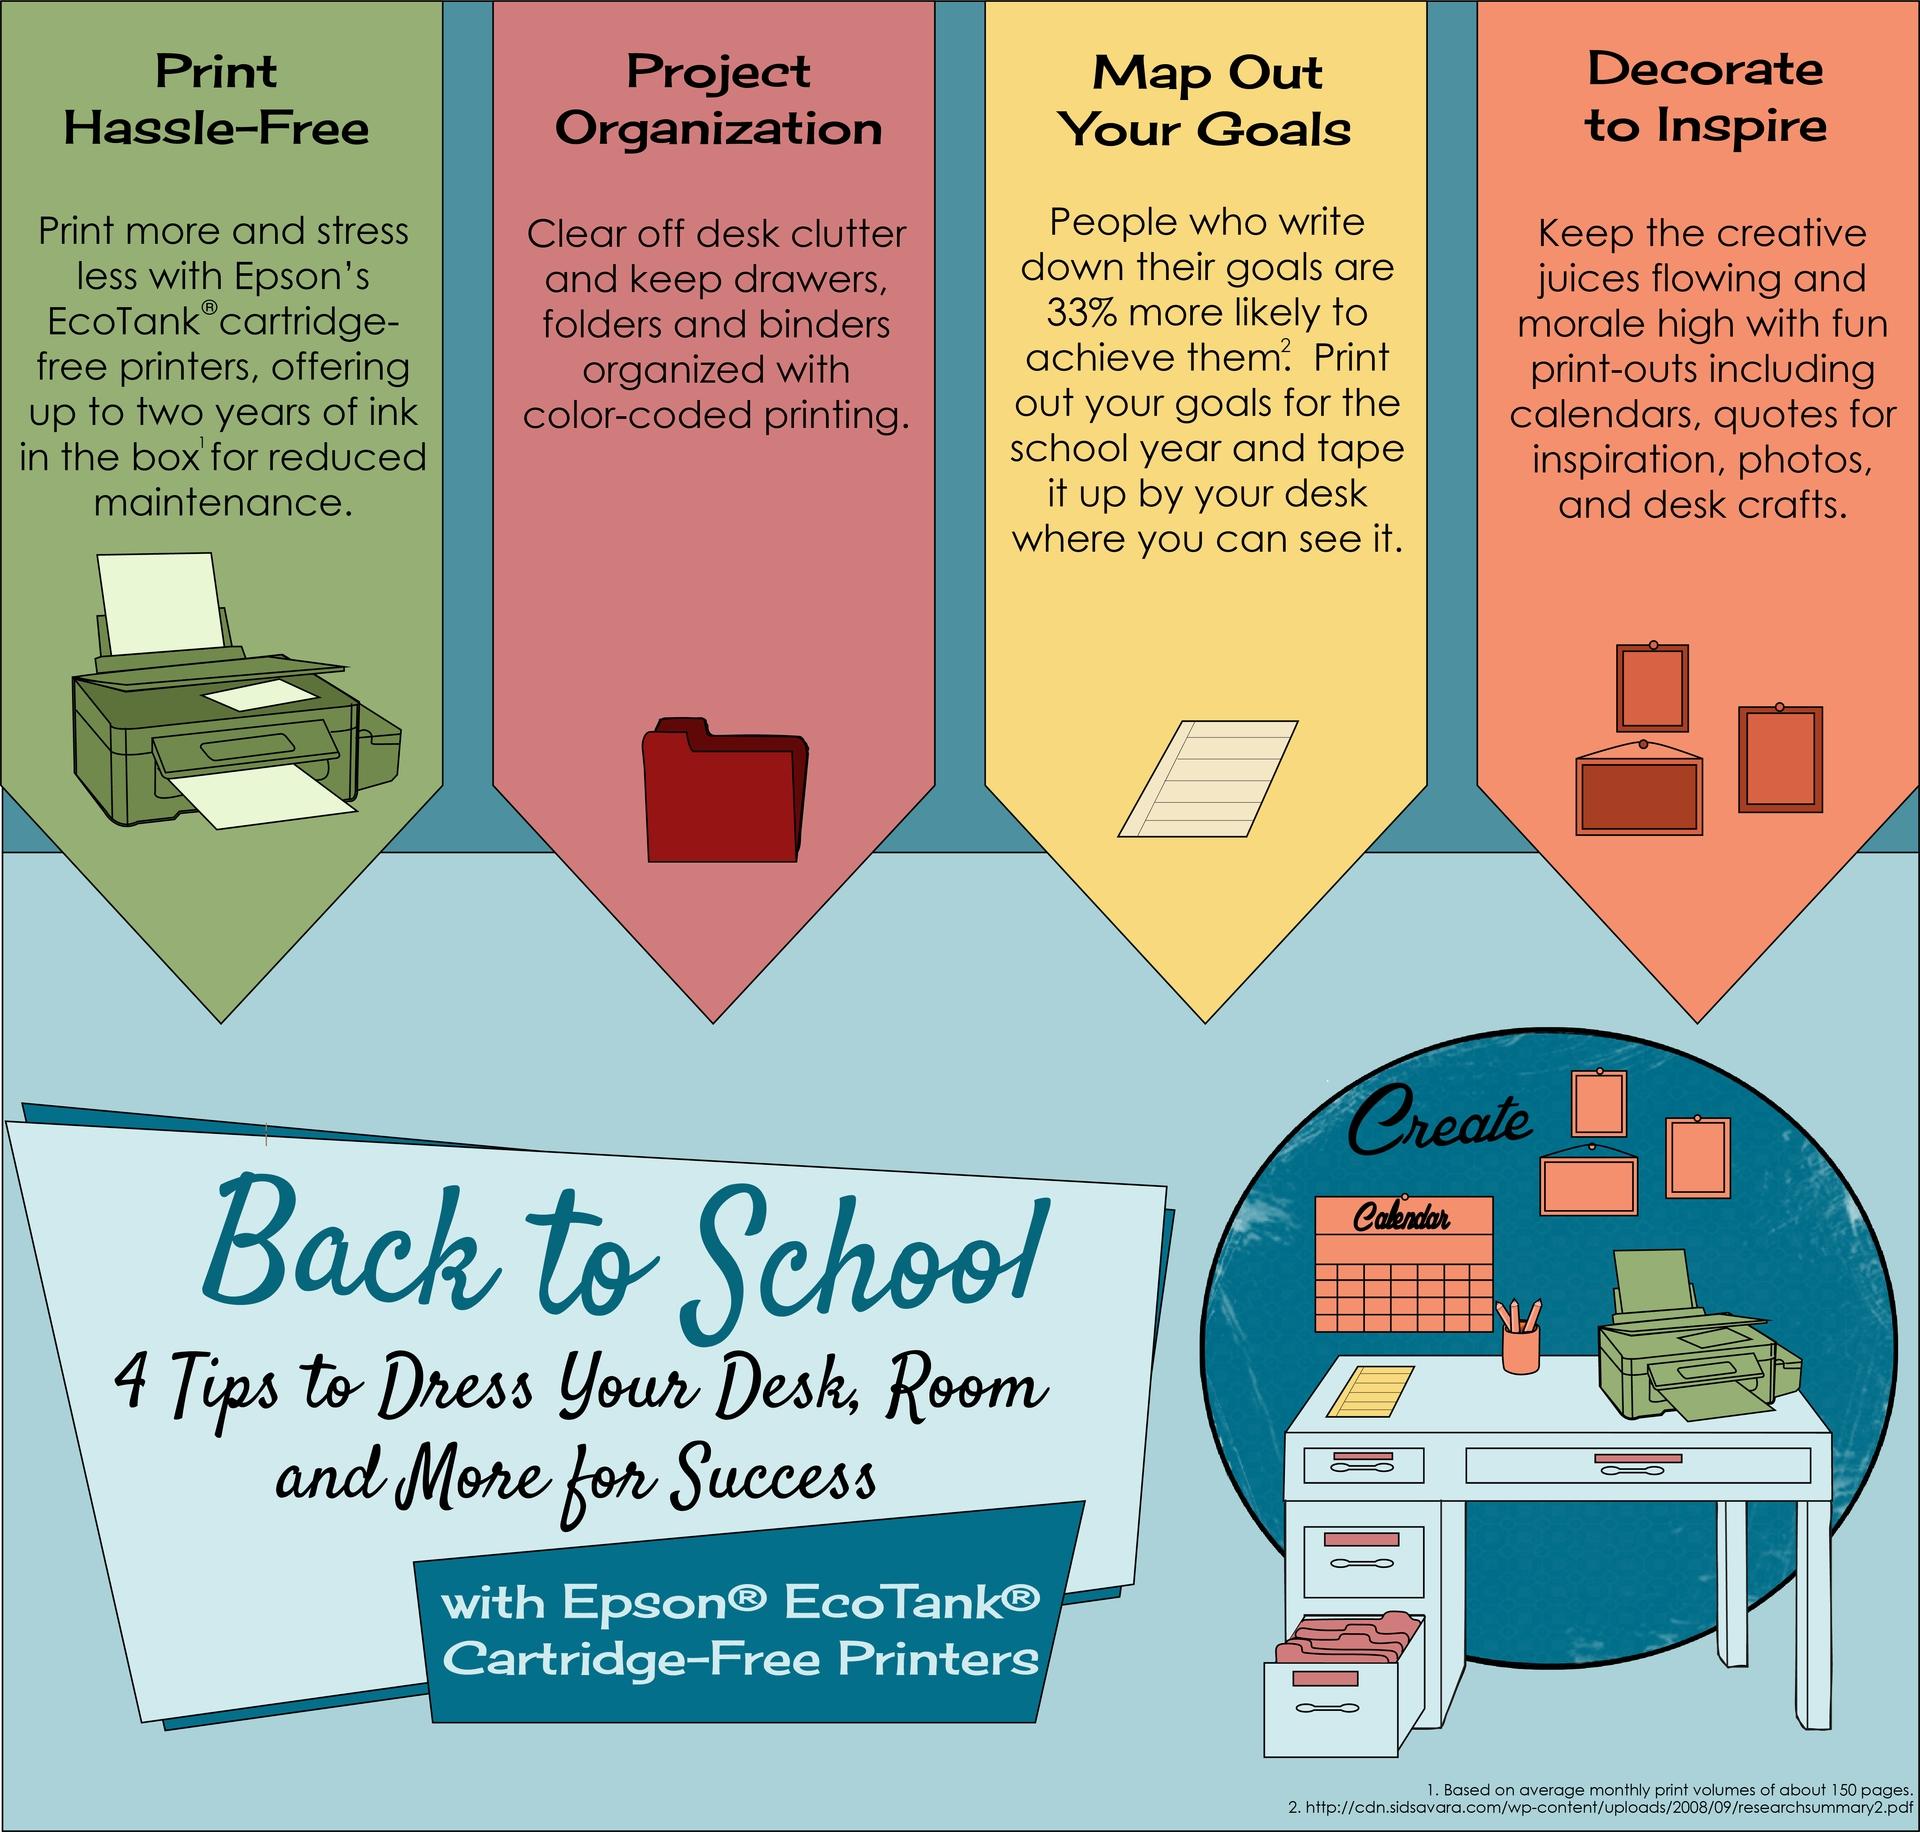 Dress Your Desk Room And More For Success This Back To School